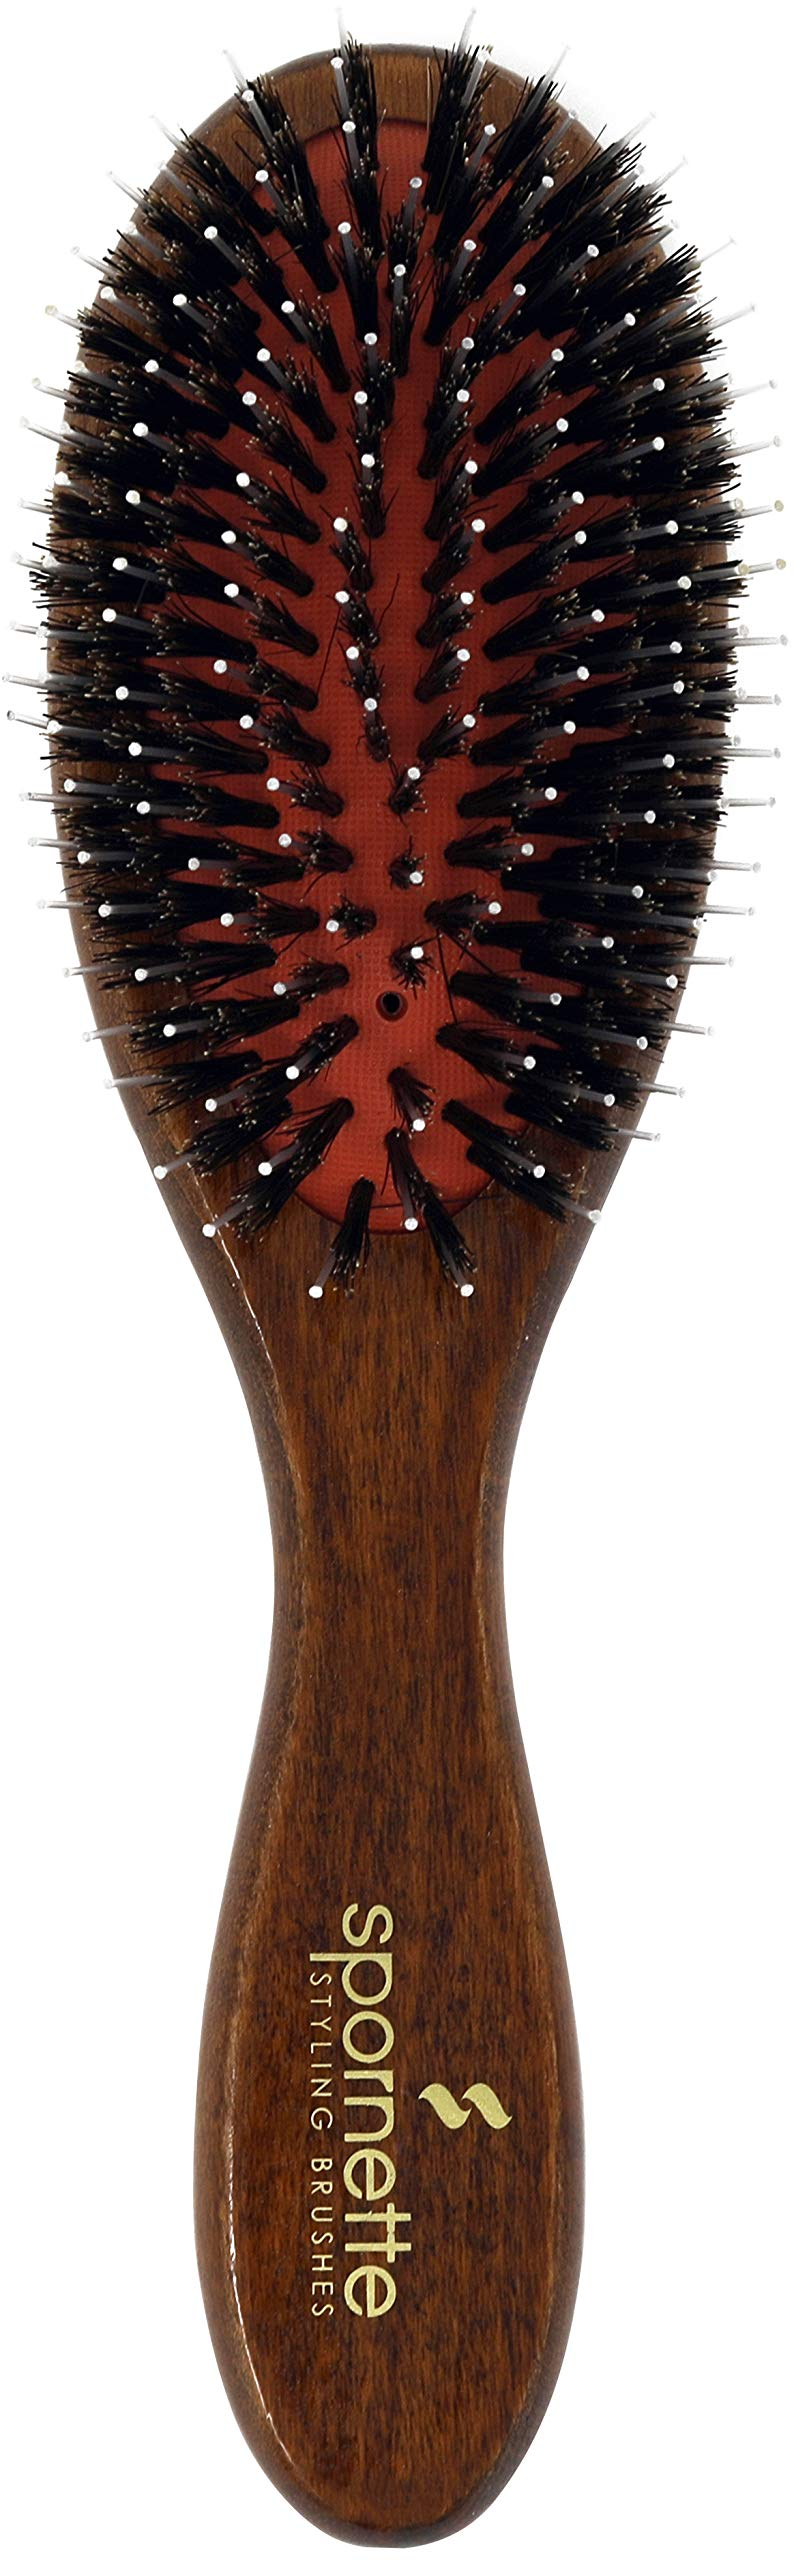 SPORNETTE Classic German Cushion Porcupine Boar & Nylon Bristle Oval Hair Brush #25 with Wooden Handle, Great for Brushing Out, Straightening, Smoothing, Detangling Thick, Normal or Thin Hair & Wigs